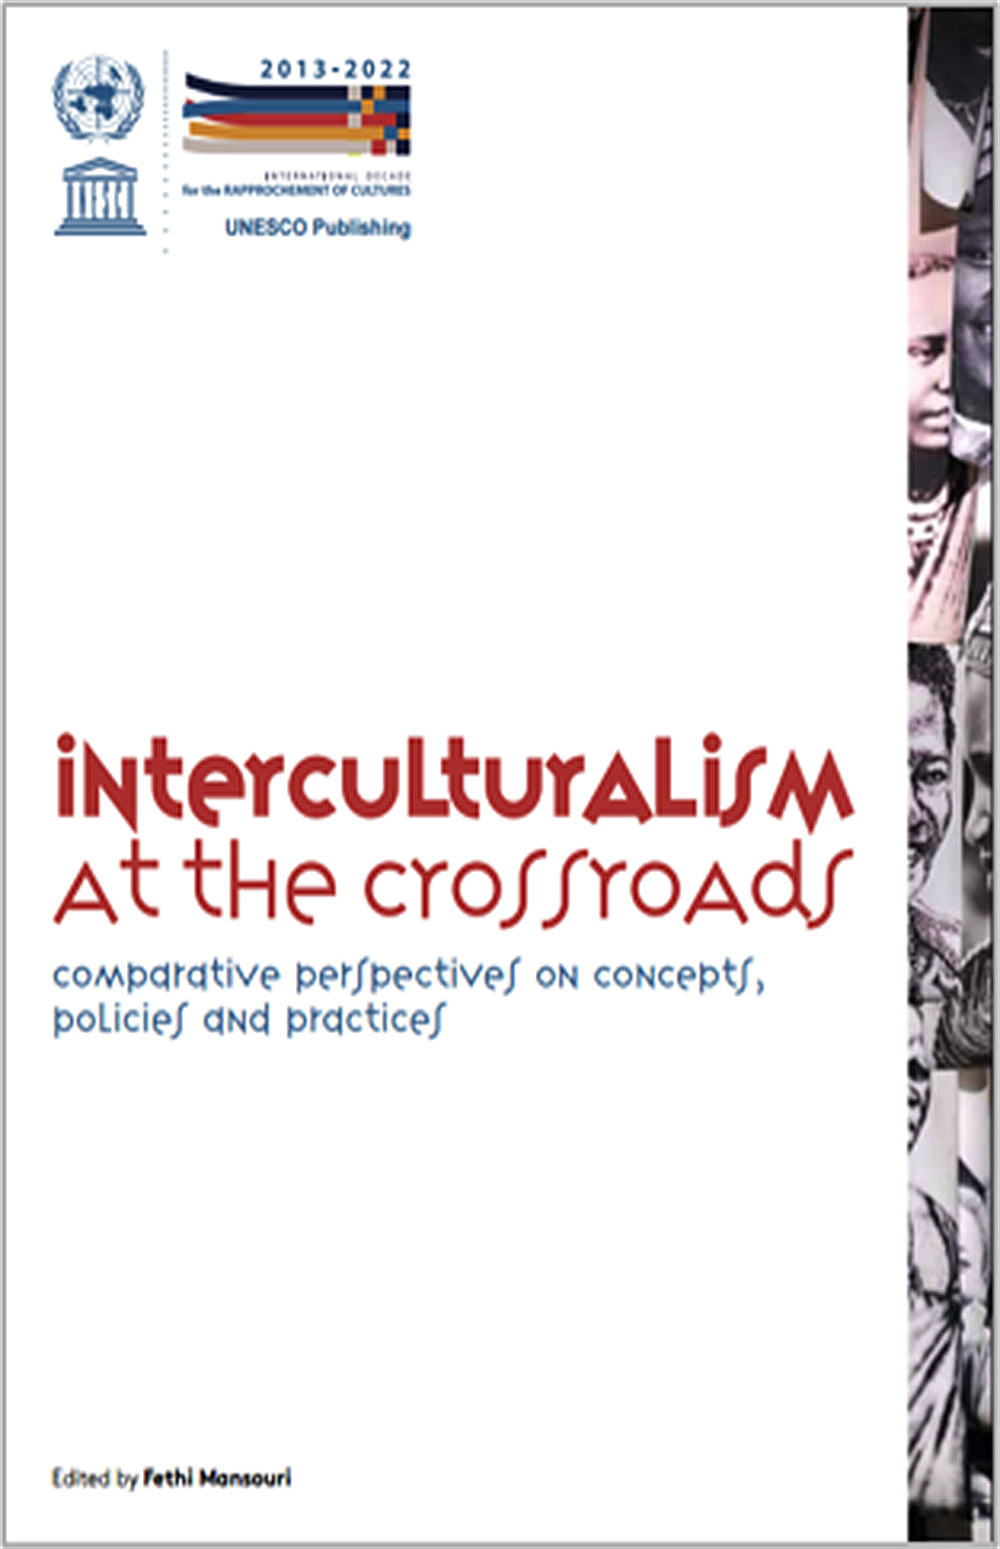 New:Mansouri, F (ed.) (2017) - 'Interculturalism at the Crossroads, Comparative Perspectives on Concepts, Policies and Practices'.UNESCO Publishing, Paris.